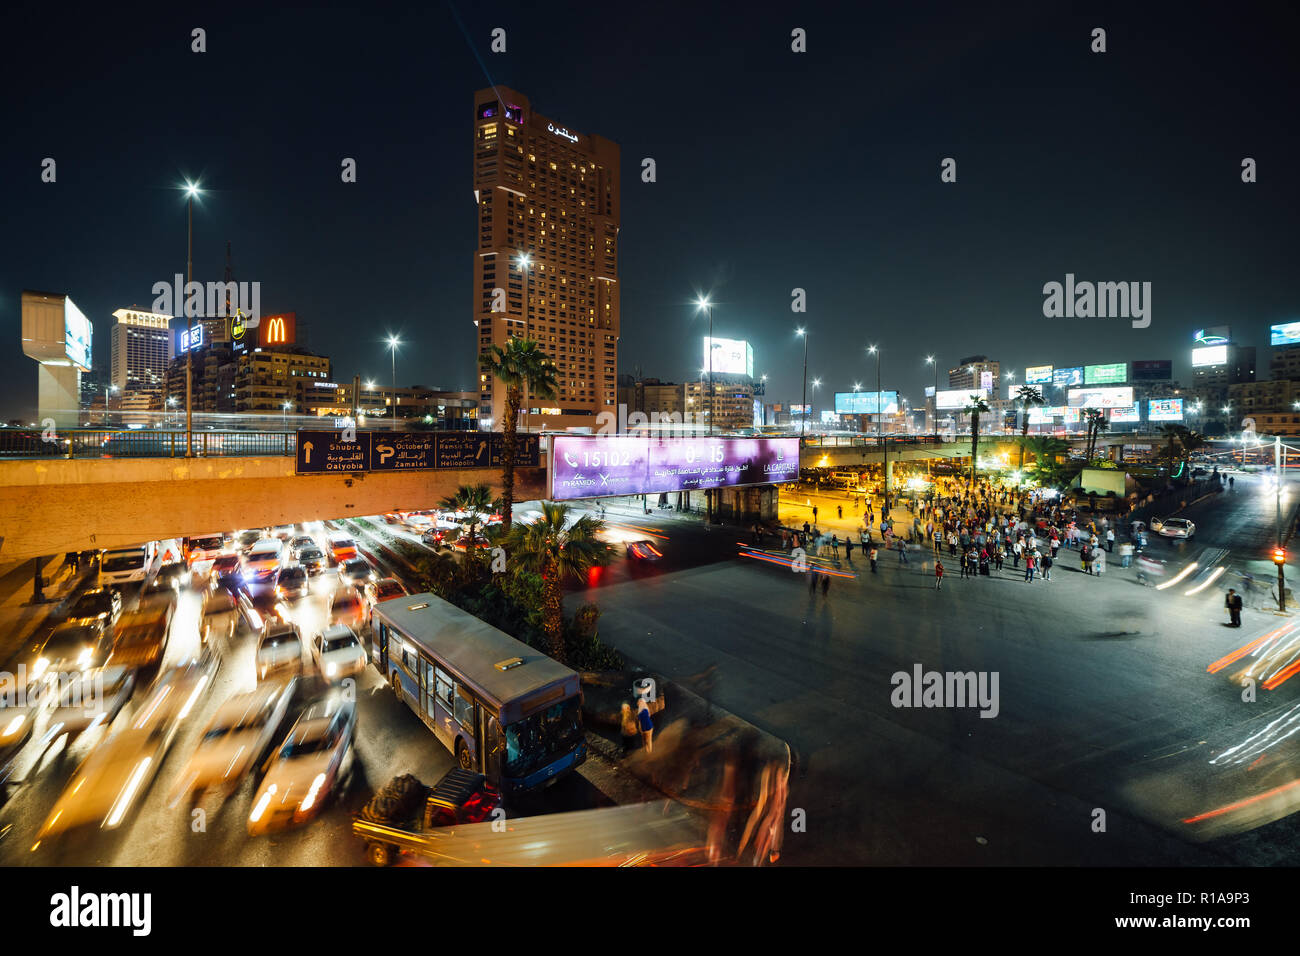 Cairo, Egypt - November 8, 2018: The busy Abdel Munim Riad square and bus station in central Cairo at night. - Stock Image